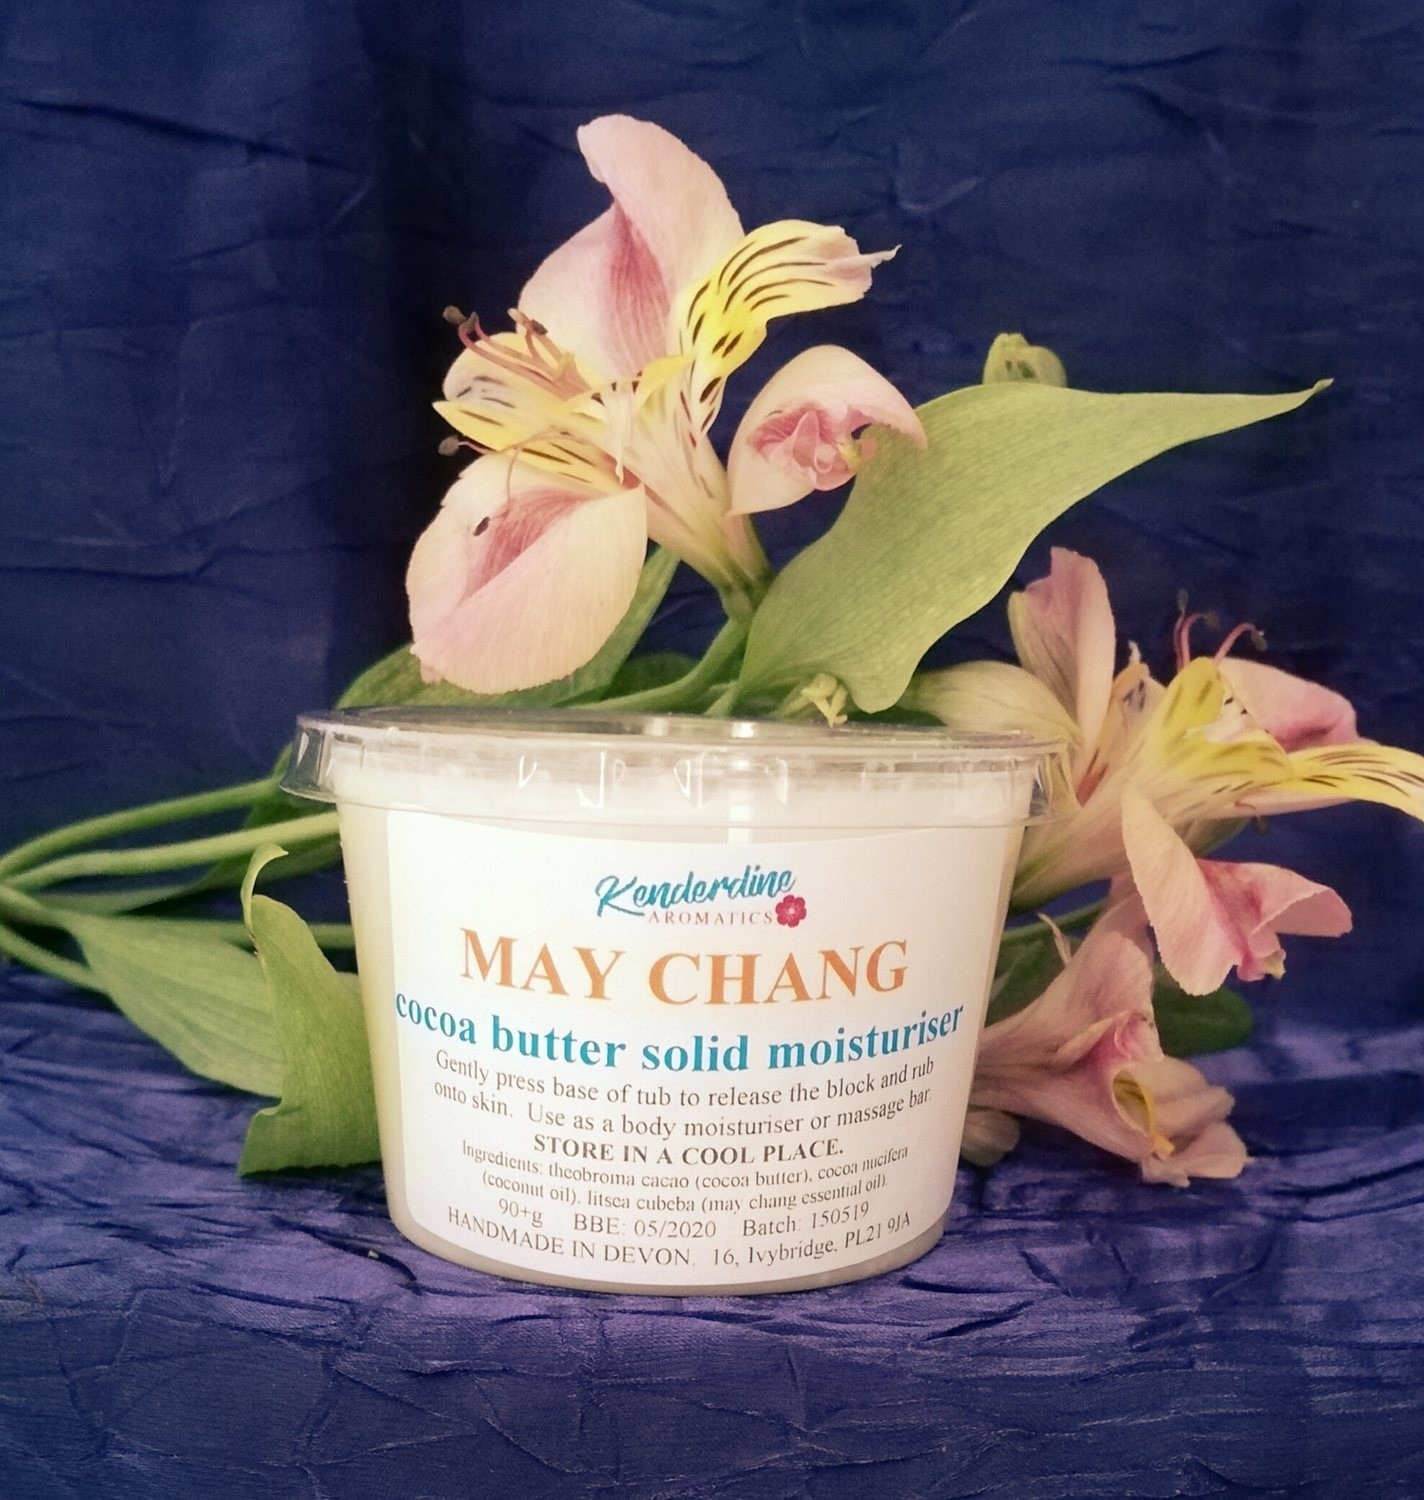 Cocoa butter solid moisturiser - May Chang